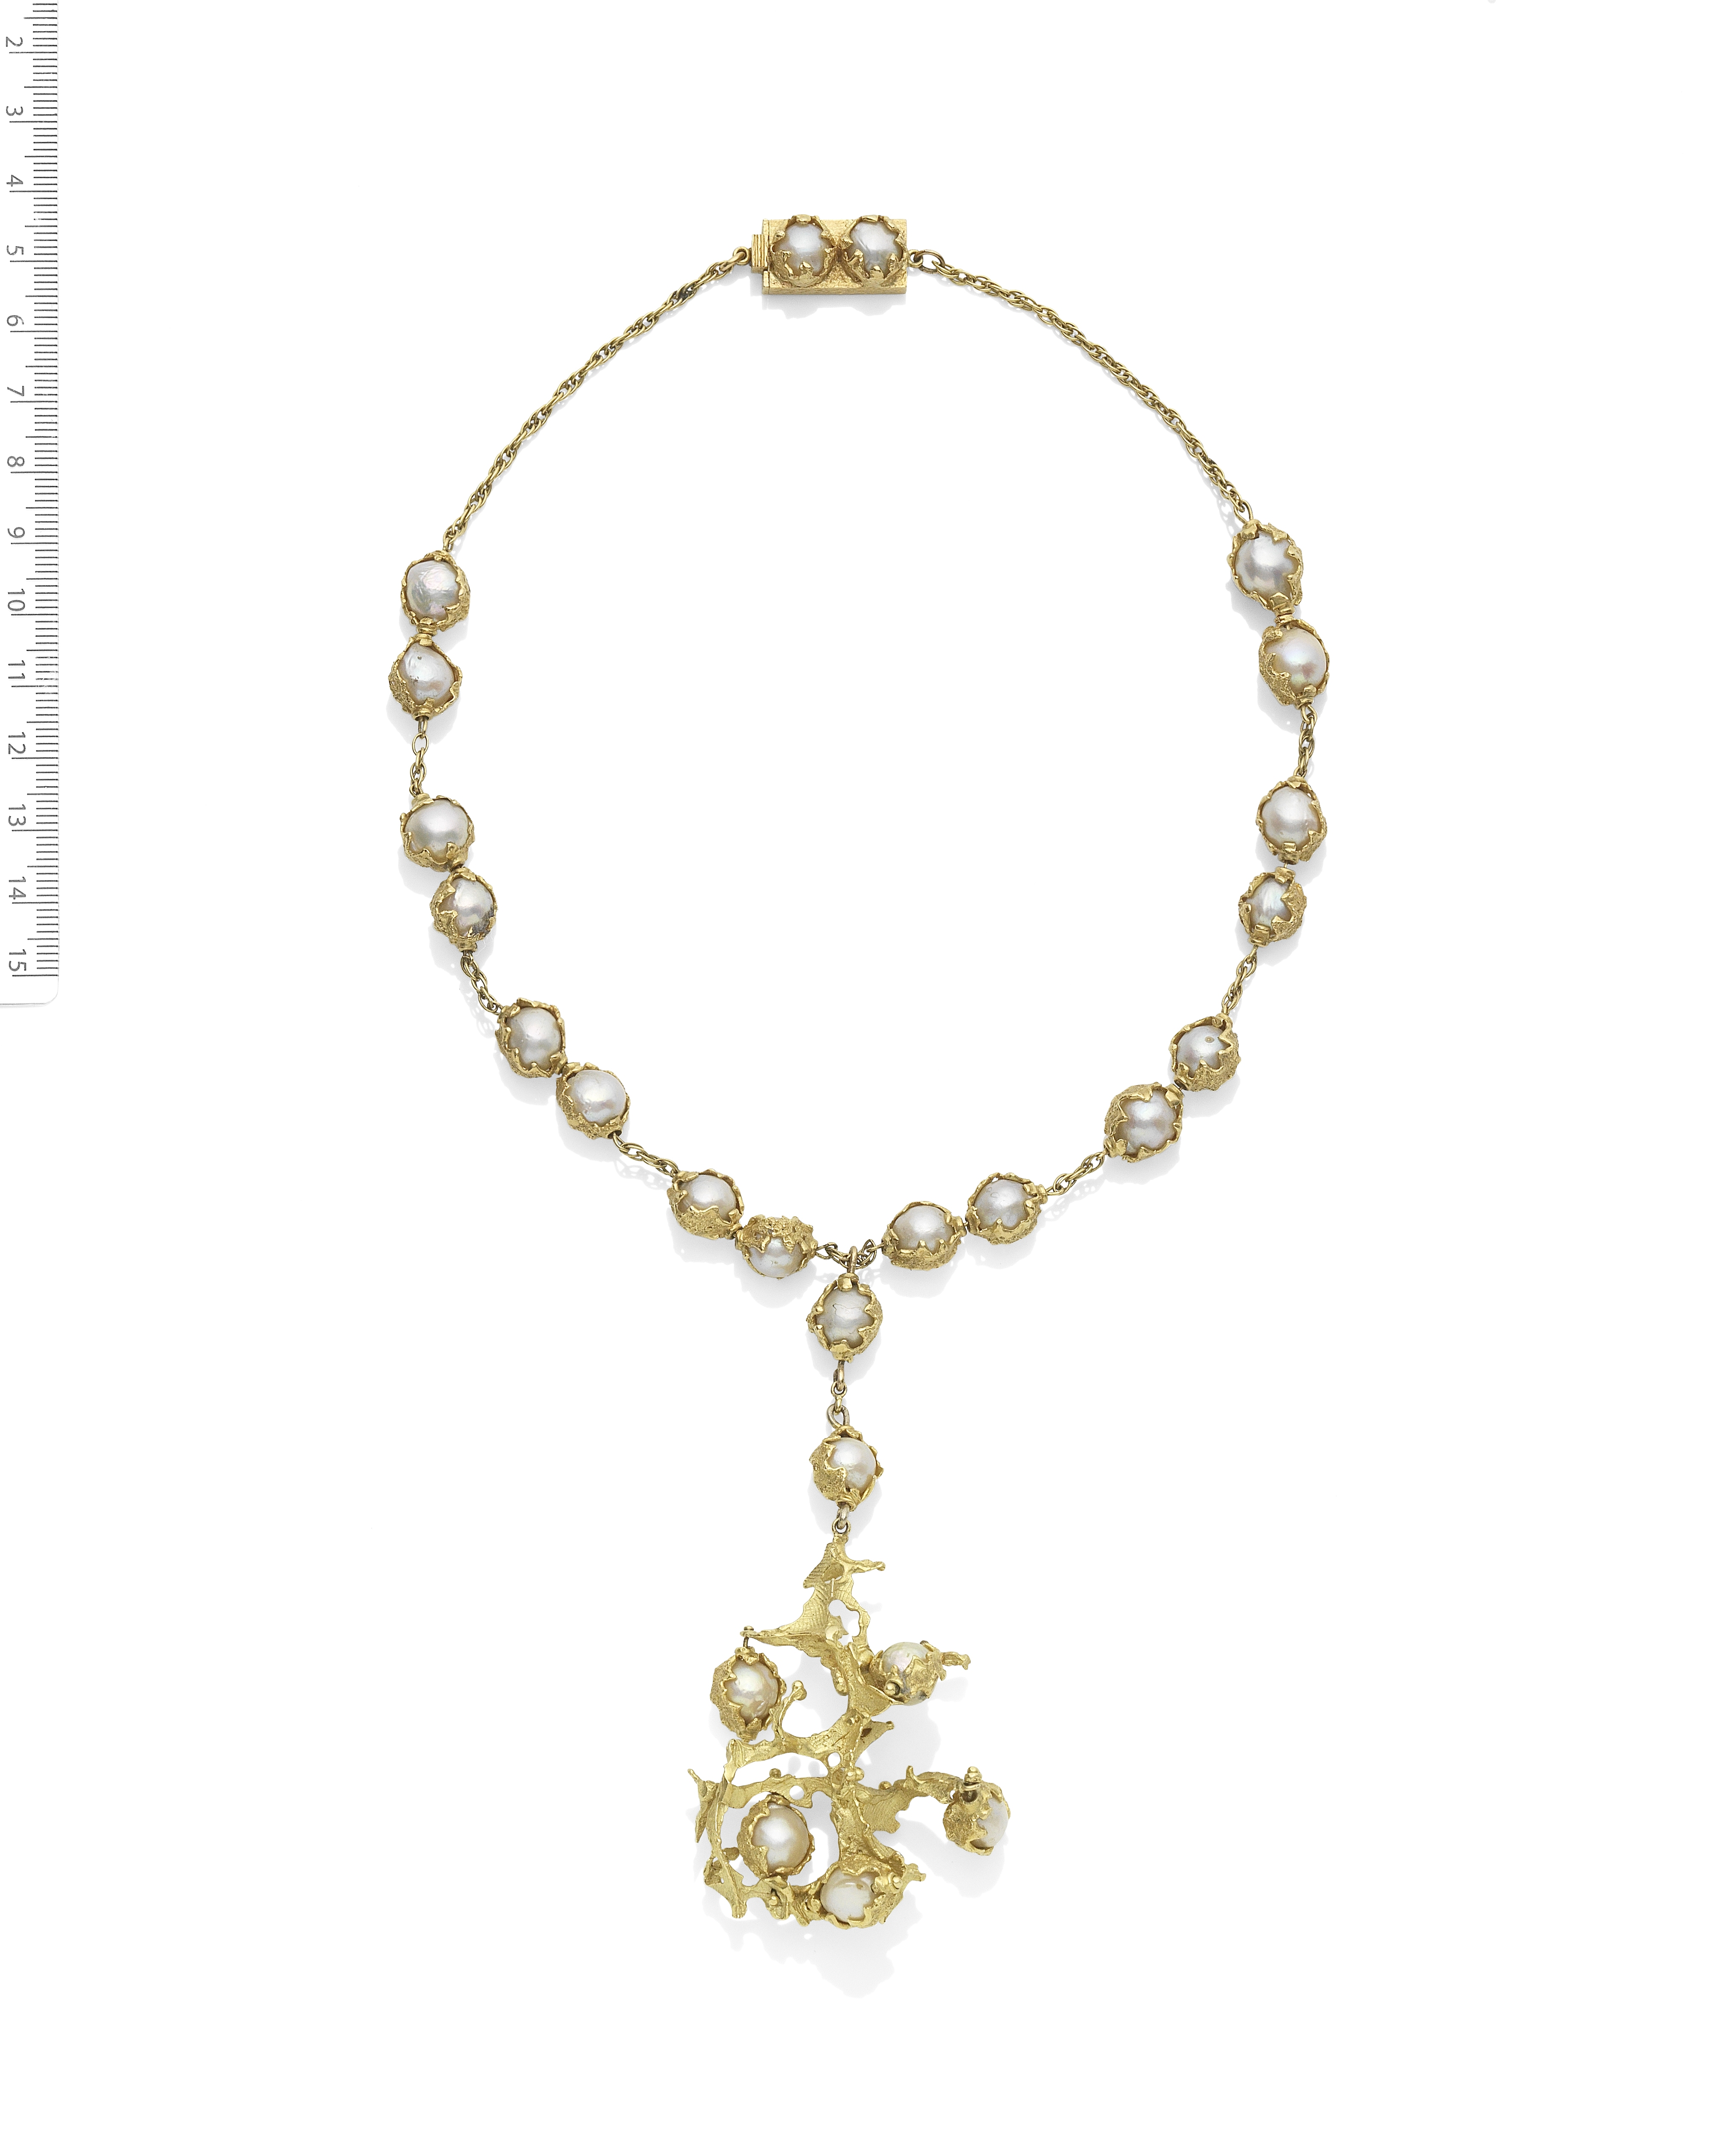 CHARLES DE TEMPLE: 'WRAPPED' CULTURED PEARL NECKLACE, CIRCA 1970